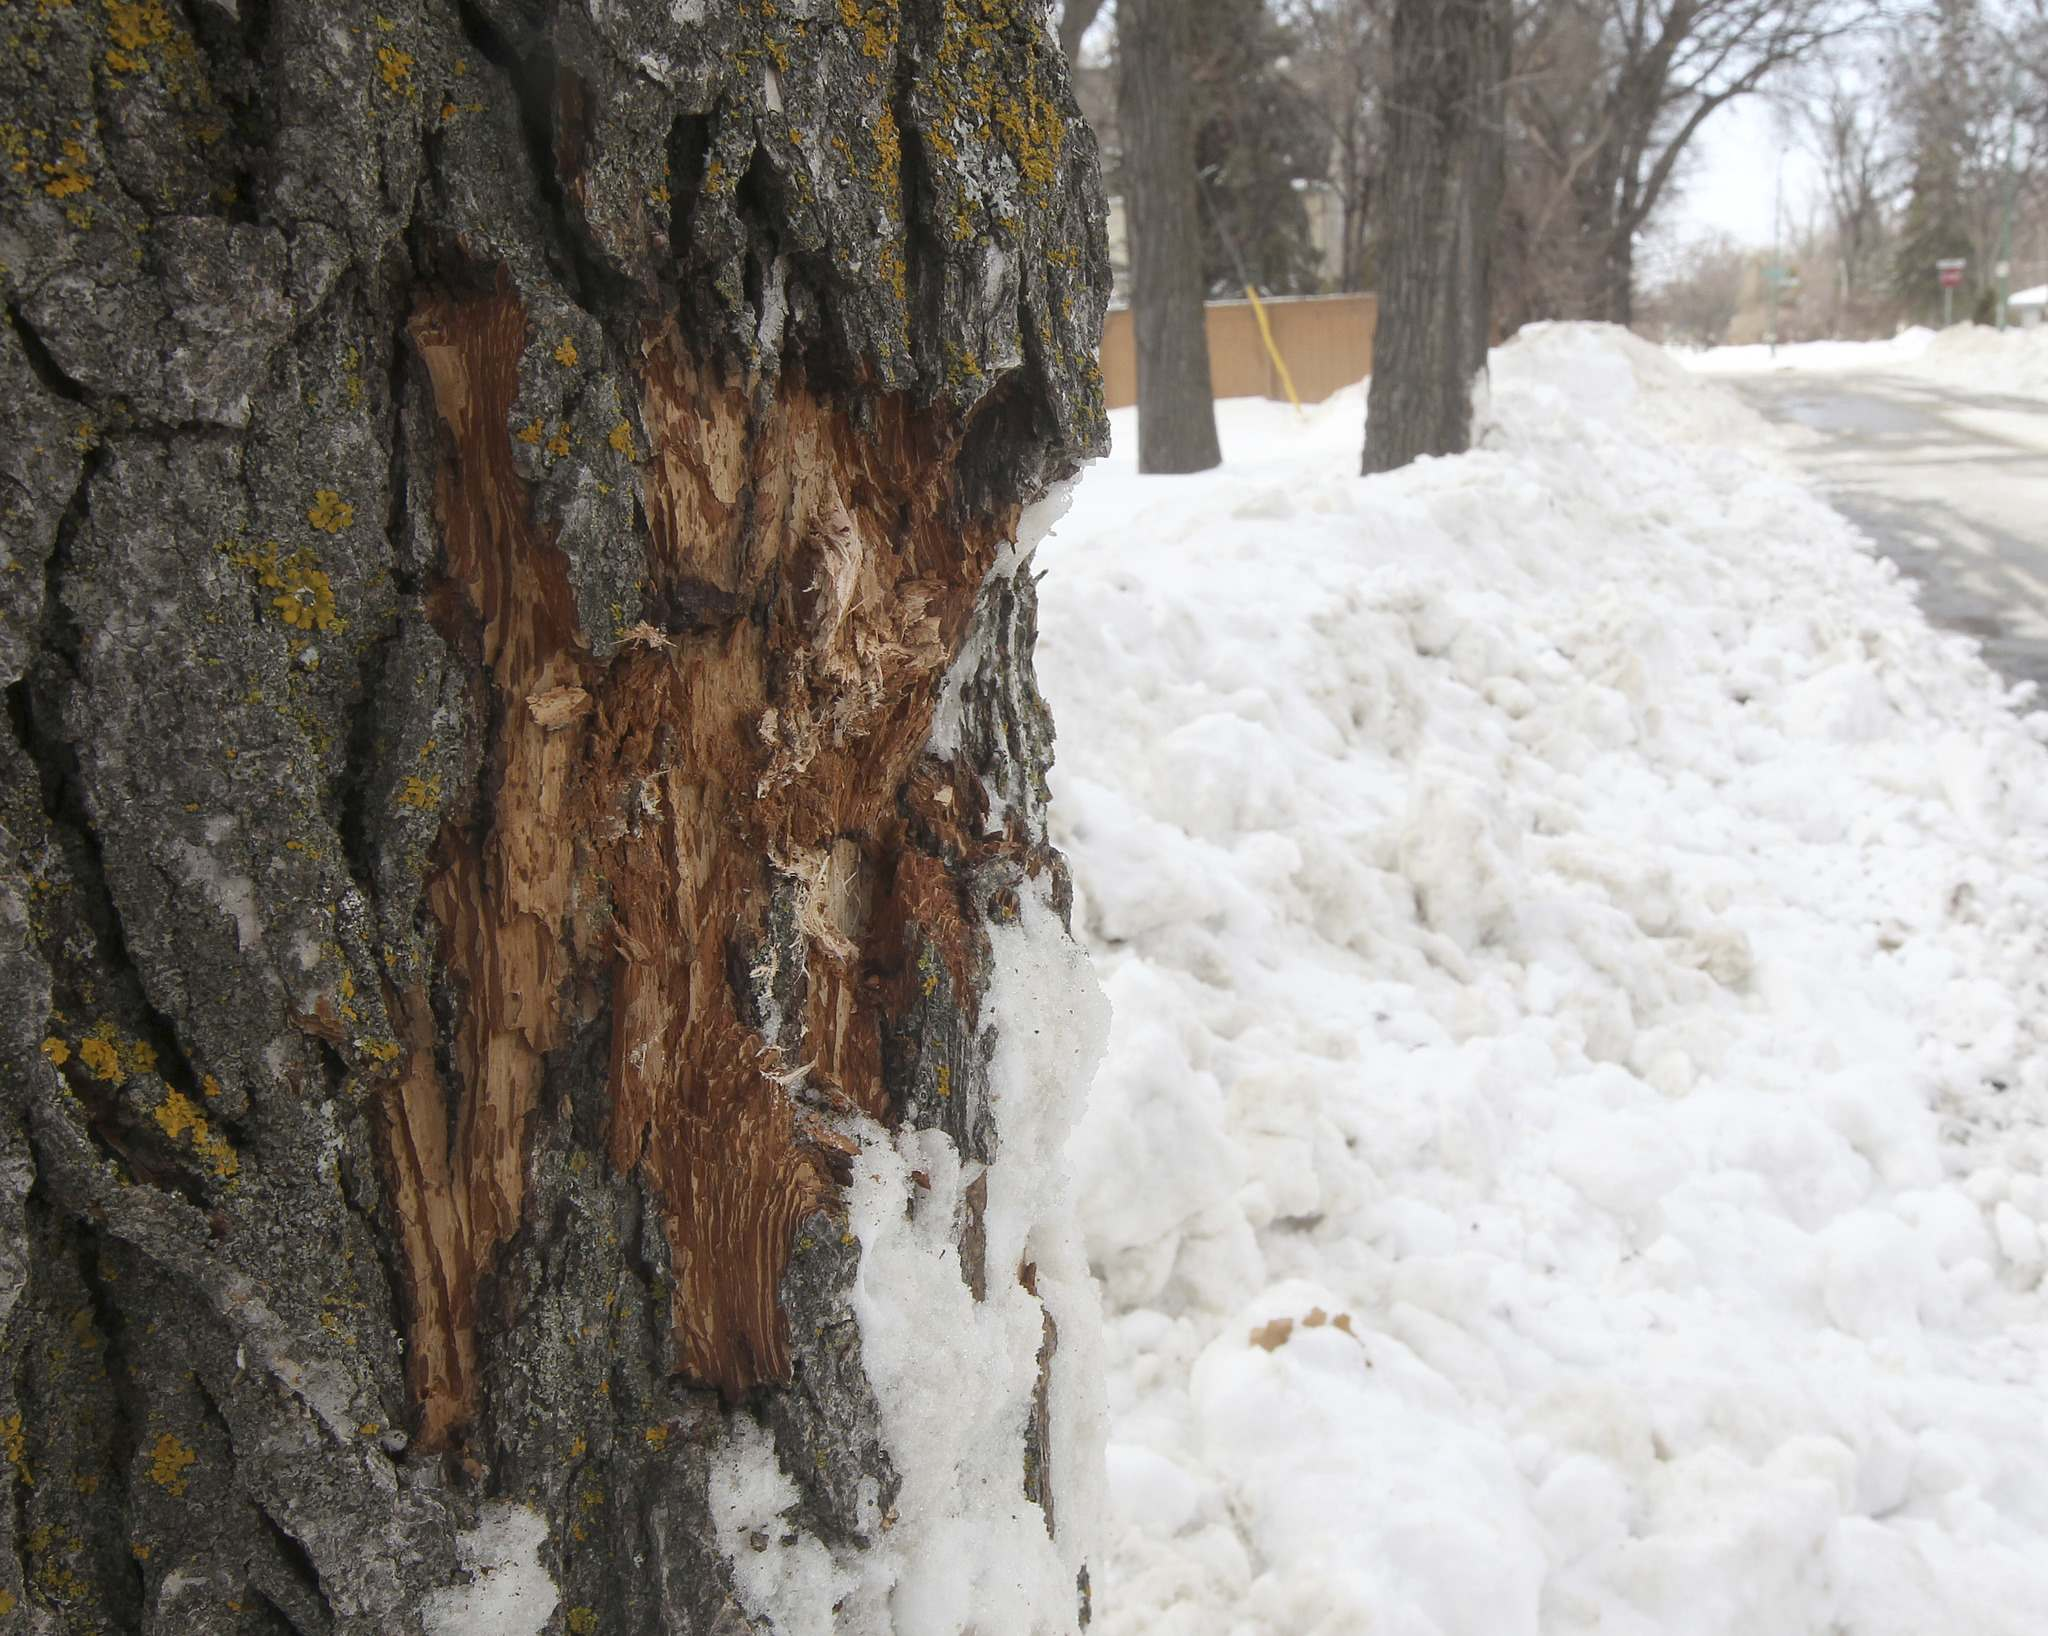 An elm tree in Riverview was damaged by plows in 2013. (Joe Bryksa / Free Press files)